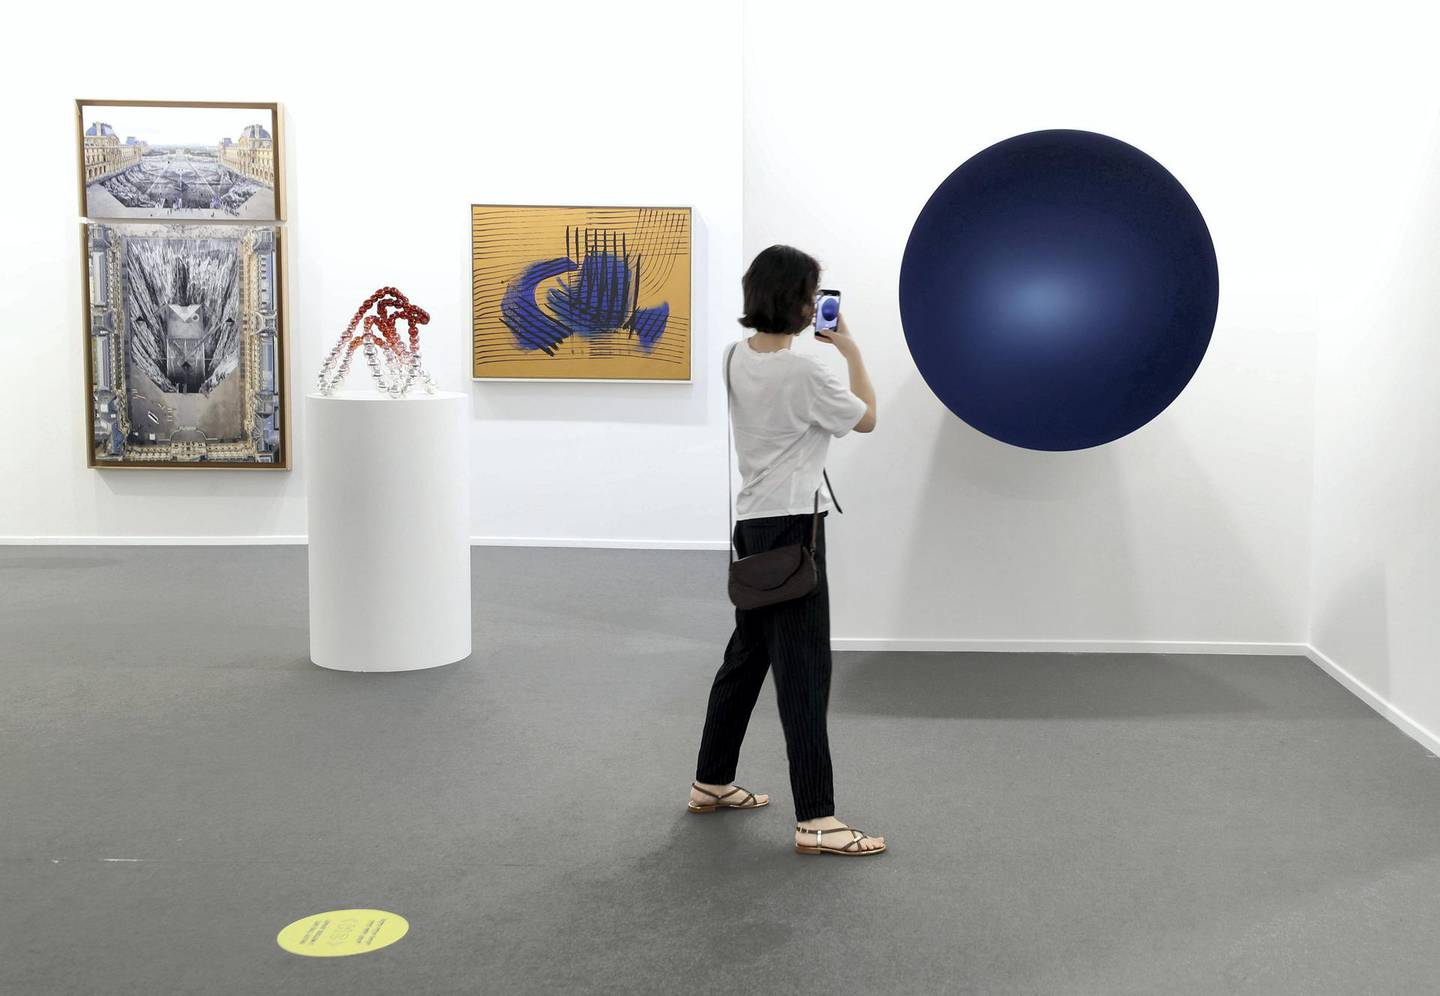 Dubai, United Arab Emirates - Reporter: Alexandra Chaves. Arts and Lifestyle. A visitor looks at a piece by Anish Kapoor called Monochrome. Art Dubai 2021 opens at the DIFC. Tuesday, March 30th, 2021. Dubai. Chris Whiteoak / The National